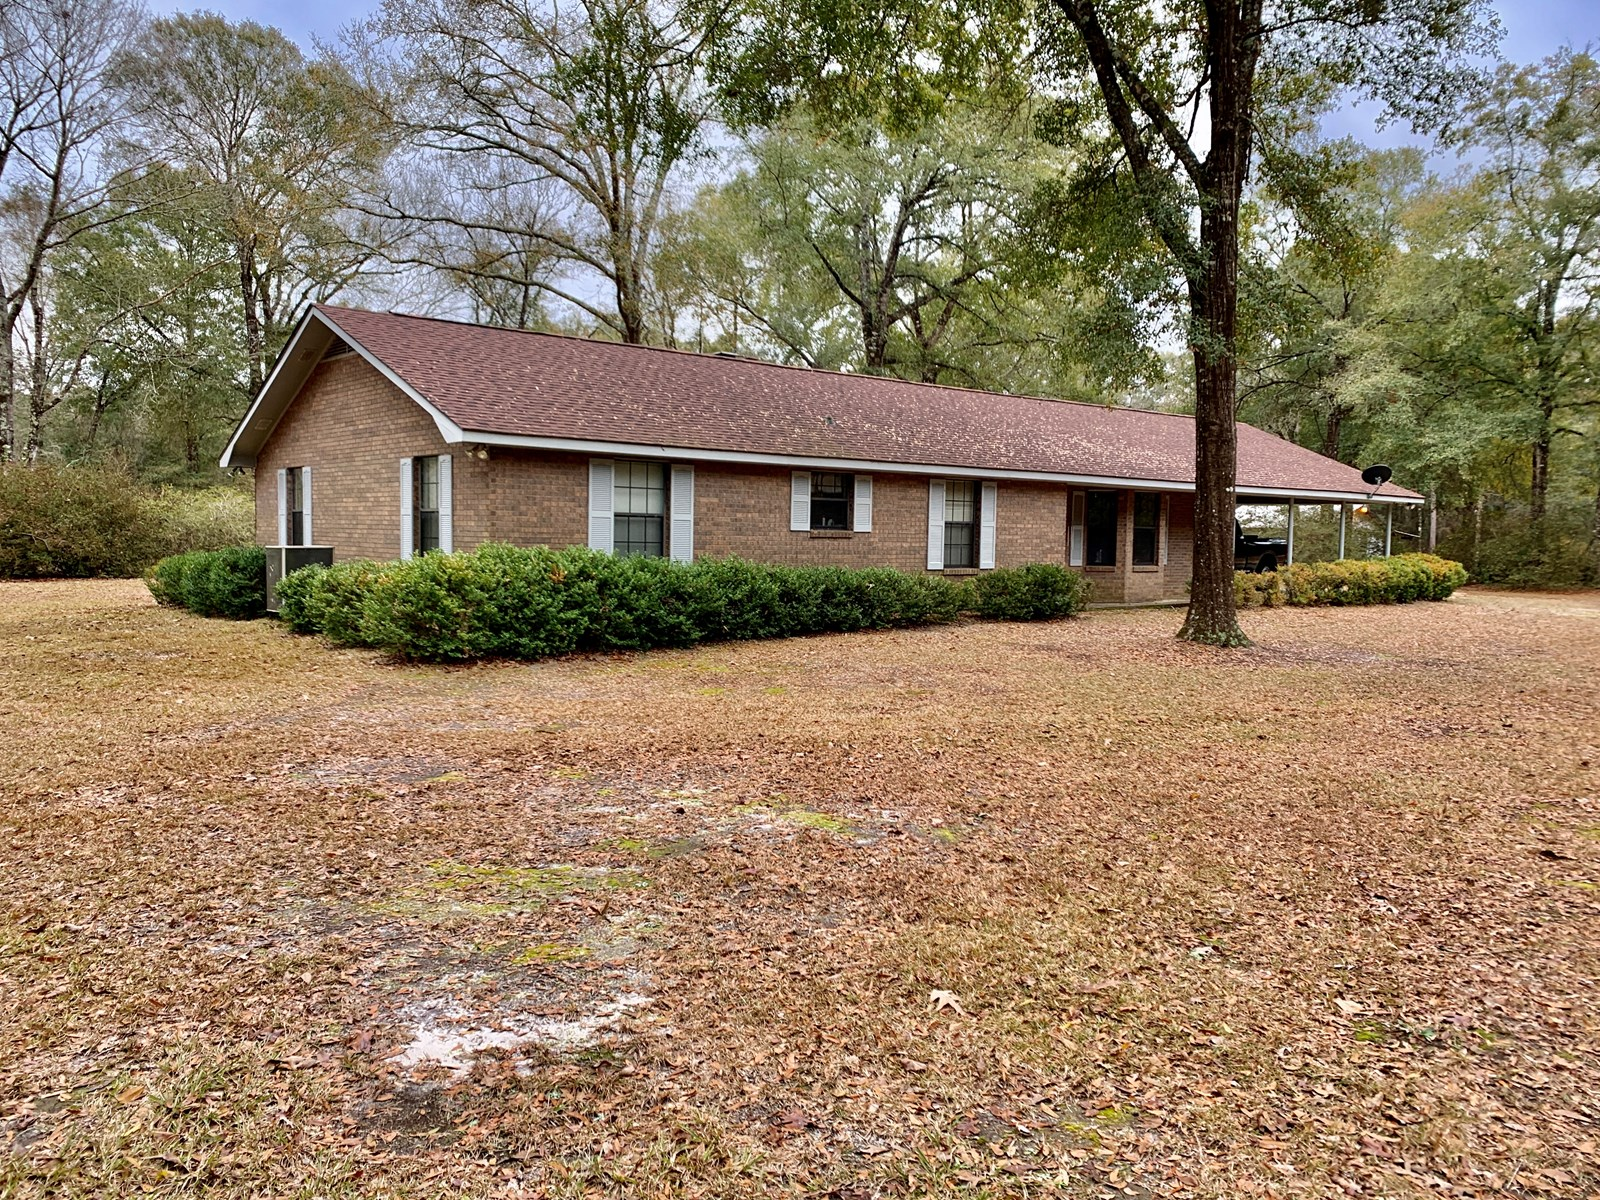 Secluded Country Home & Land For Sale Kinston Alabama